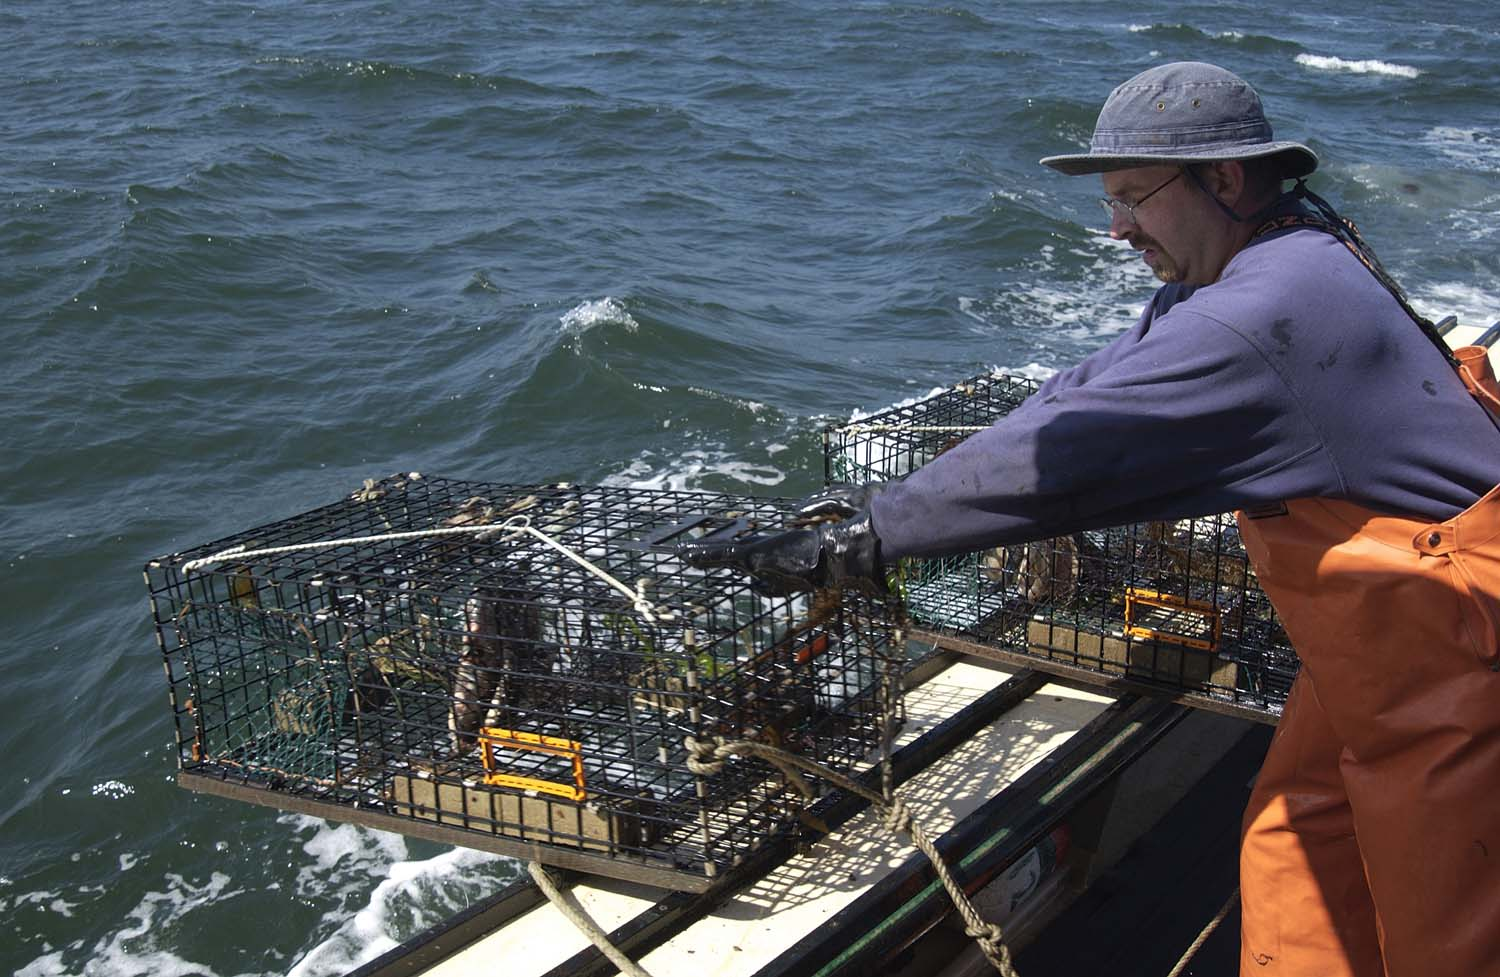 A crewman releases baited lobster traps off of the Jeanette T, a lobster boat owned by Mike Theiller that was fishing out of New London in 2005. Most of the remaining commercial lobstering in Connecticut occurs in eastern Long Island Sound.